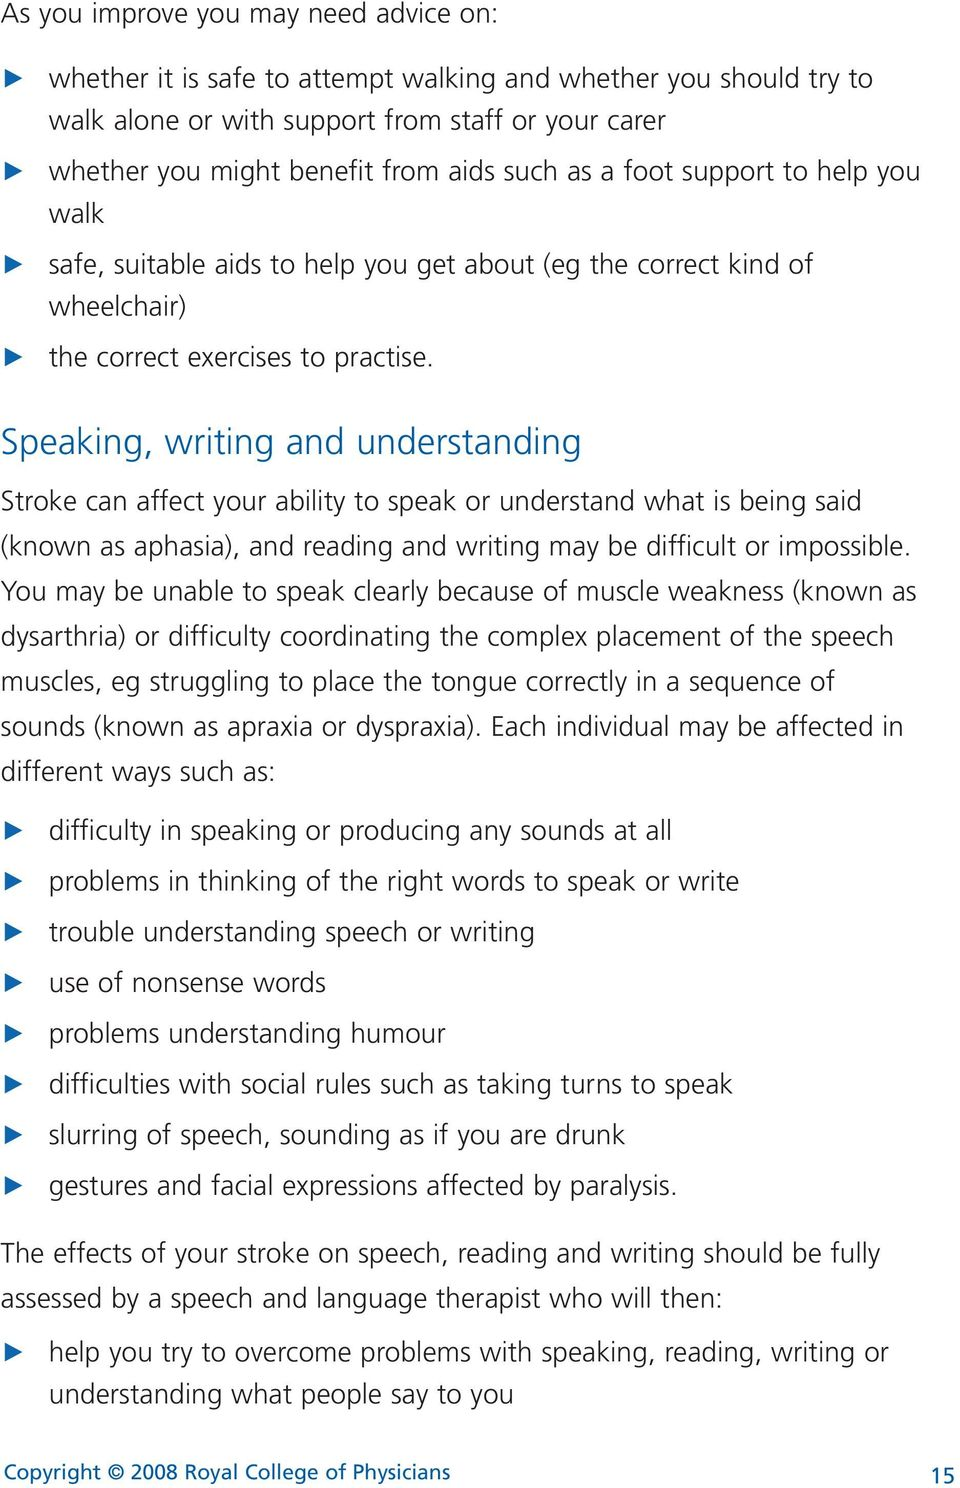 Speaking, writing and understanding Stroke can affect your ability to speak or understand wat is being said (known as apasia), and reading and writing may be difficult or impossible.